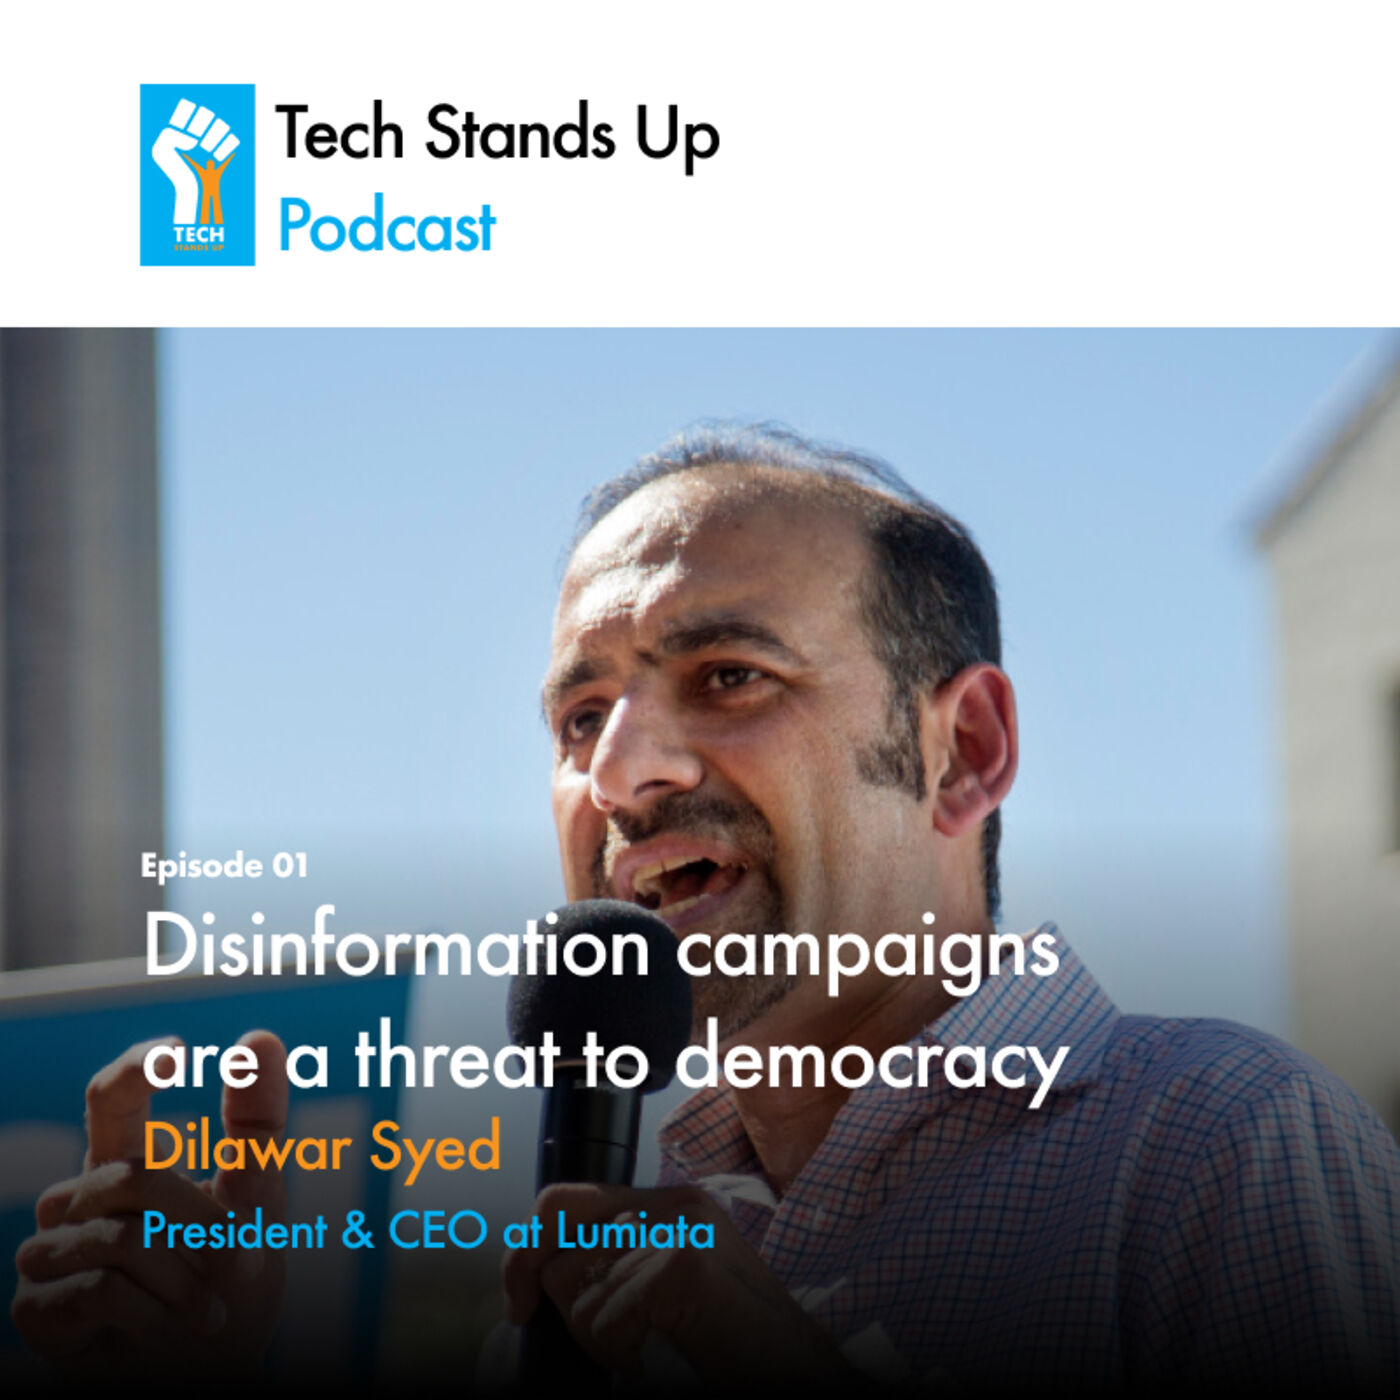 Dilawar Syed: AI and COVID, helping small businesses, disinformation campaigns